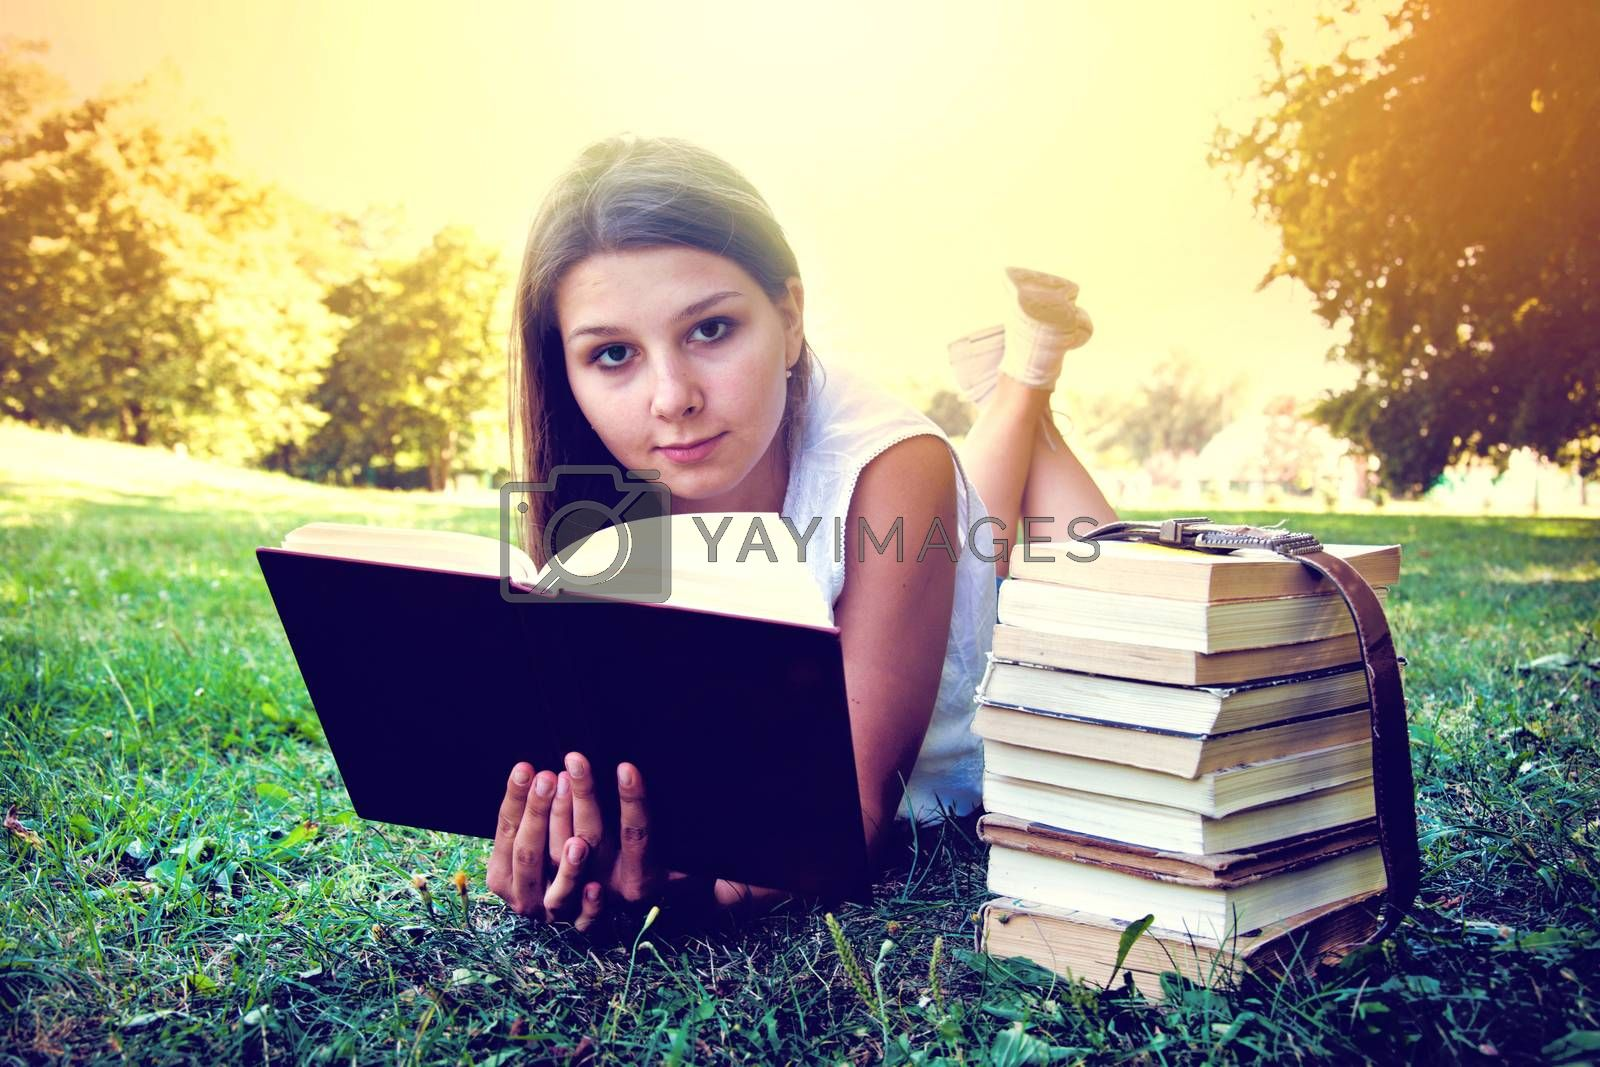 Student girl reading a book on campus grass. Education conceptual image. Instagram vintage picture.